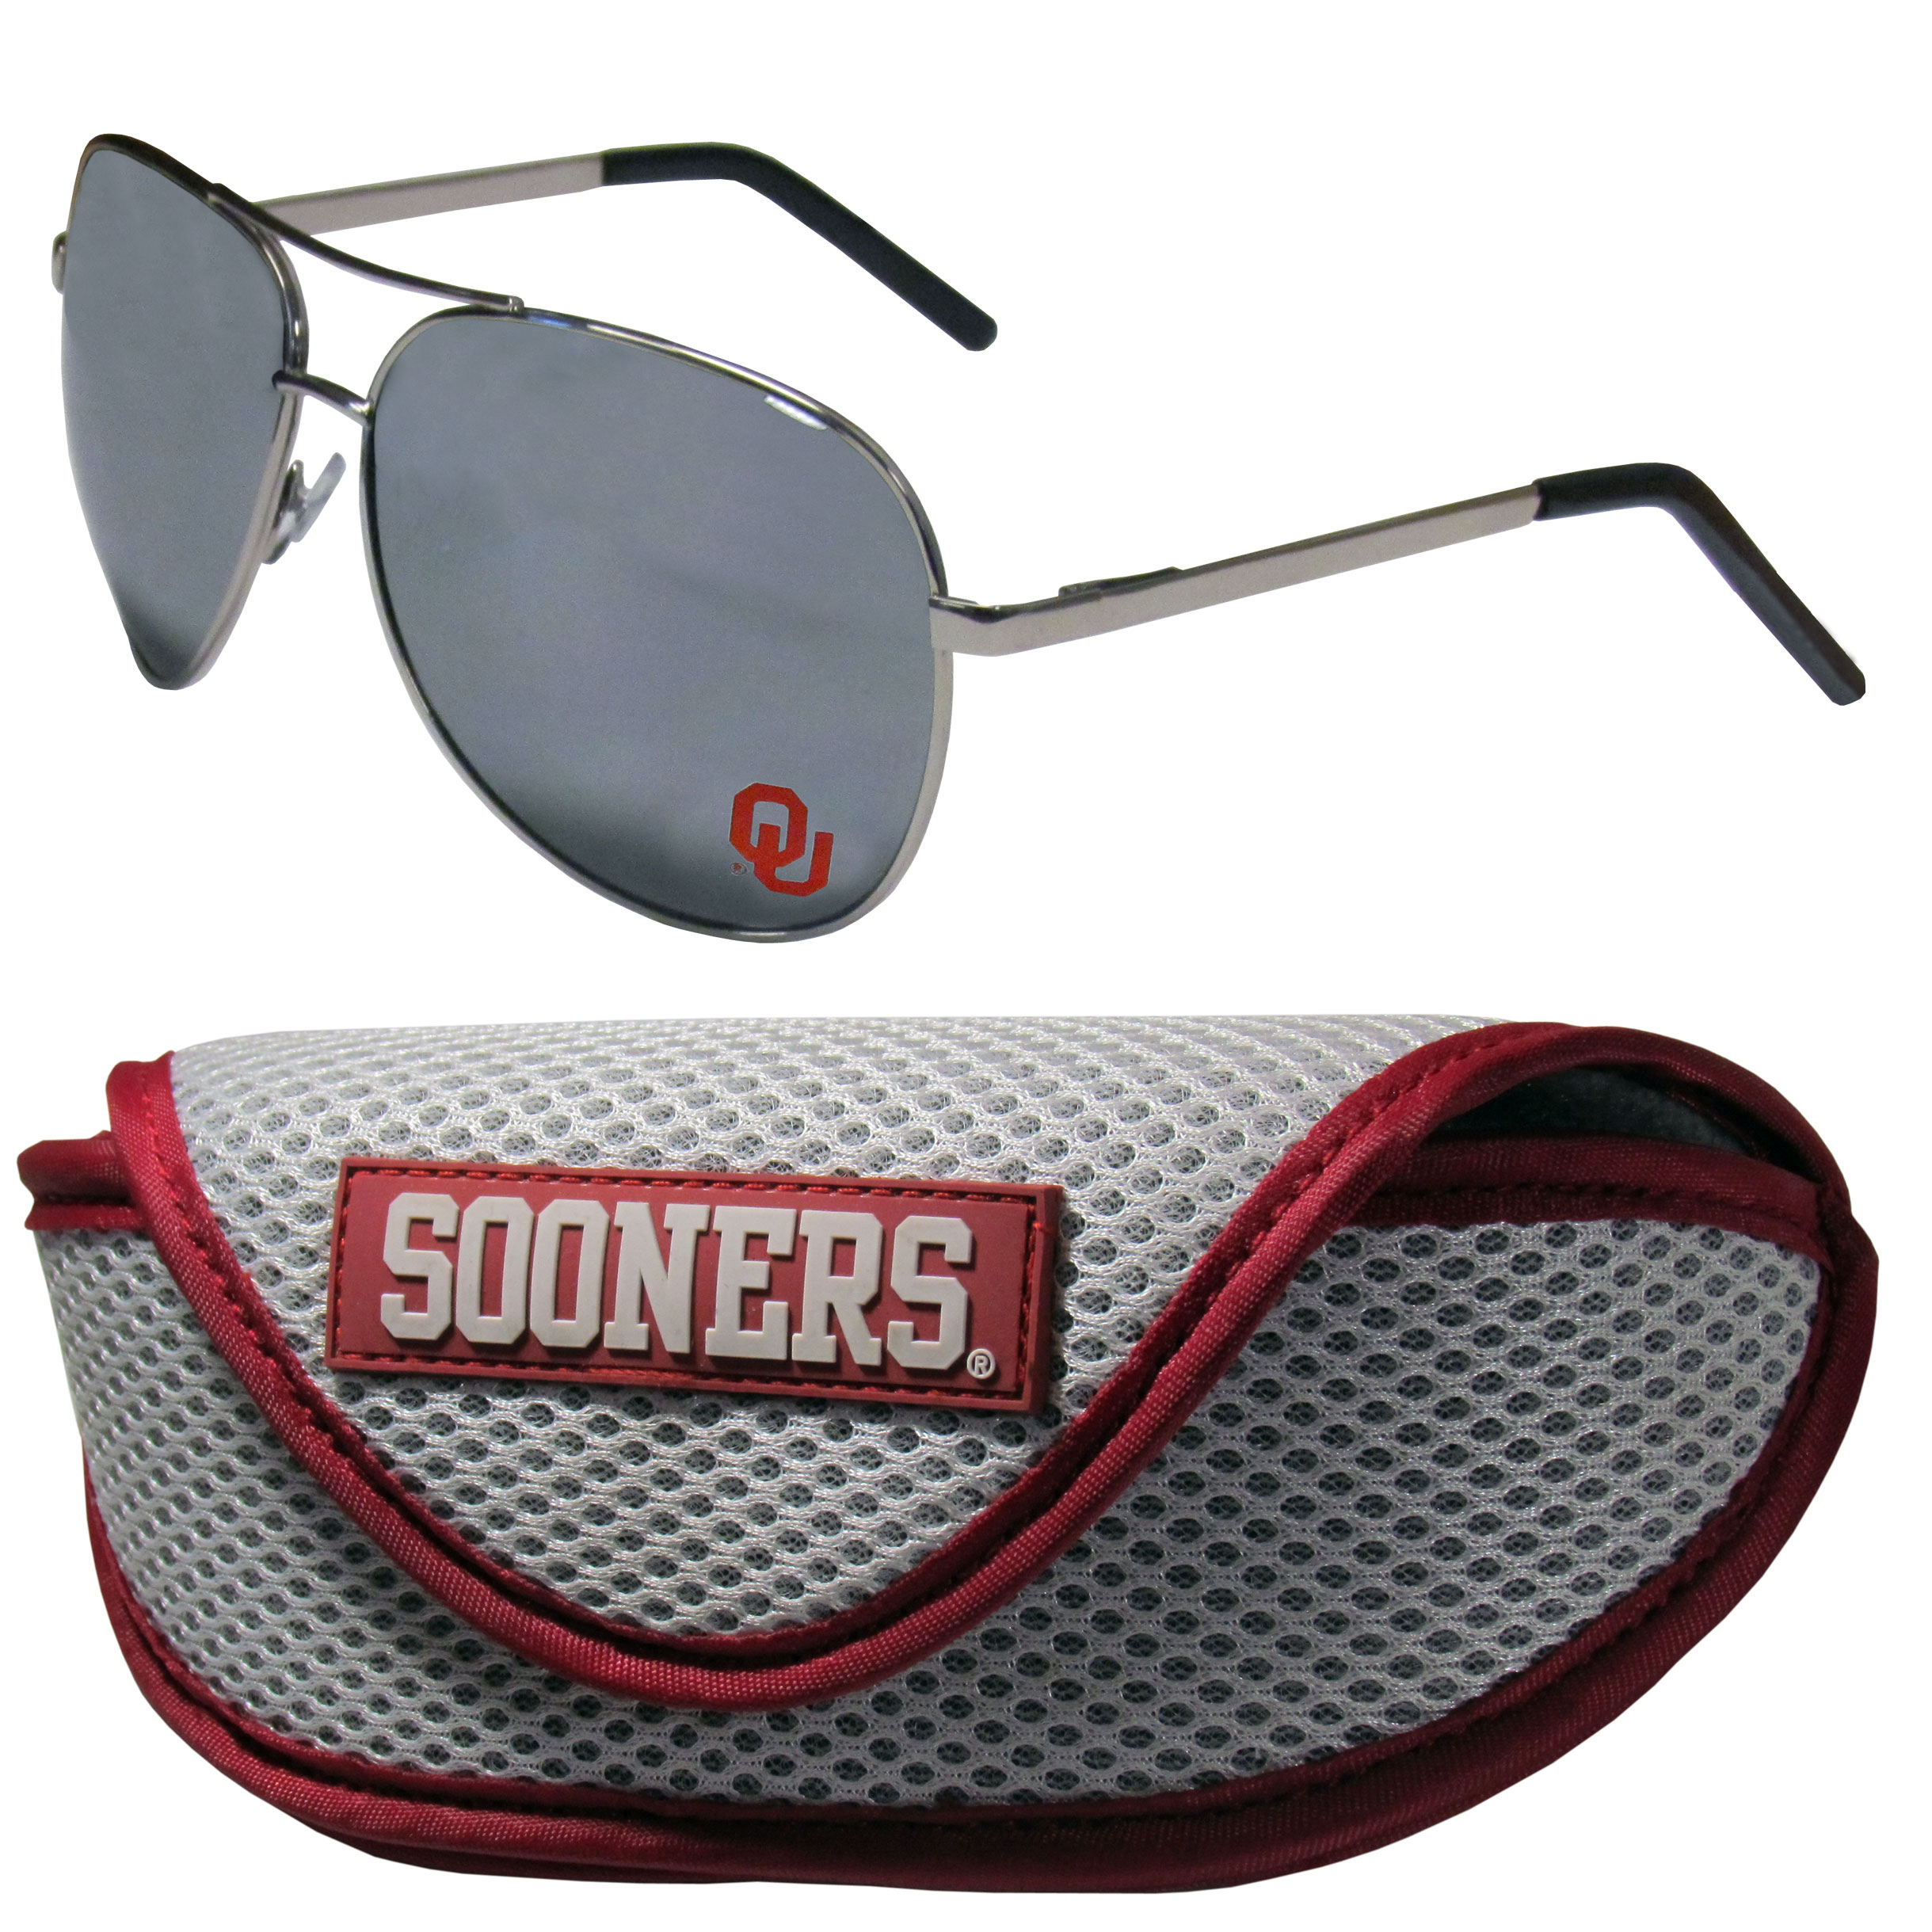 Oklahoma Sooners Aviator Sunglasses and Sports Case - Aviator sunglasses are truly an iconic retro fashion statement that never goes out-of-style. Our Oklahoma Sooners  aviator sunglasses pair this classic look with your love of the game. The iridium coated lenses reduce glare while driving, boating, golfing and their 100% UVA/UVB rating provides you with the maximum UV protection for all your outdoor activities. A millennial favorite, these affordable designer frames are the perfect eyewear accessory for a sports fan that is looking for high-quality at an affordable price. The durable, flex hinged frames are tough enough for hiking and camping or if you prefer sun bathing by the pool or on the beach these shades will really stand the test of time. The sunglasses come with a sporty case which has a large team logo on the lid that will make even the most die-hard fan proud!